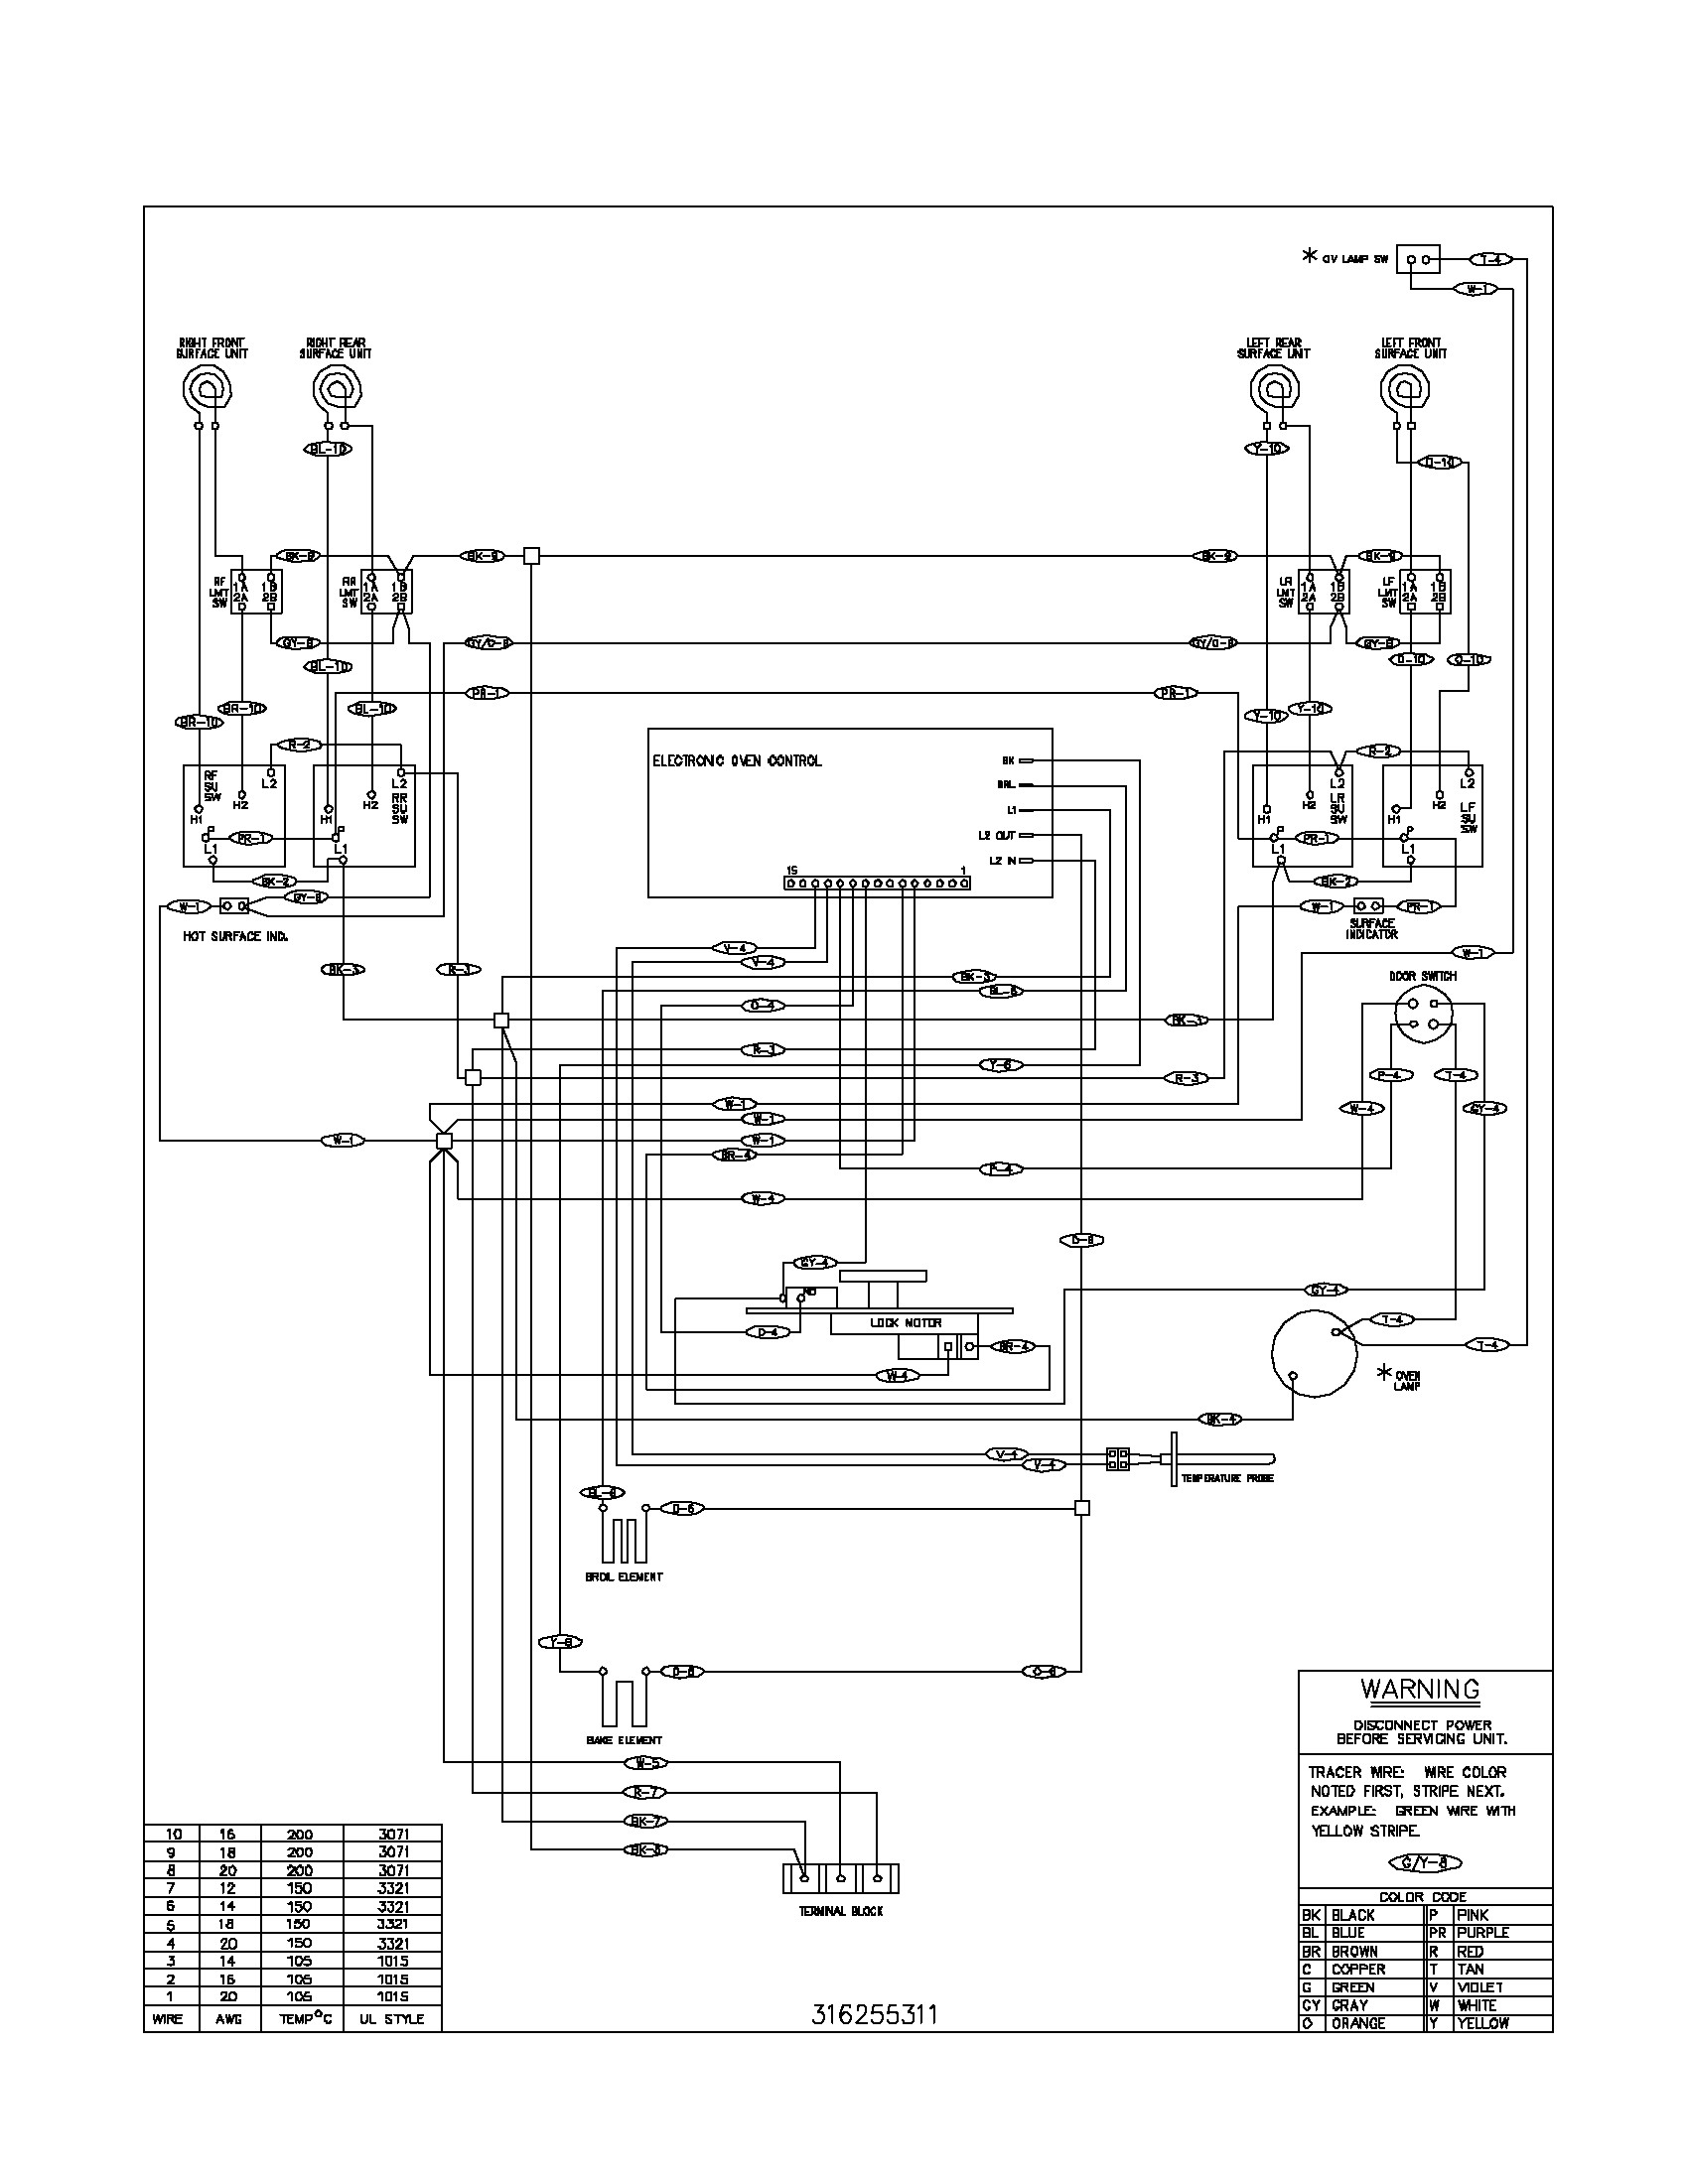 Gas Oven Wiring Diagram | Wiring Diagram